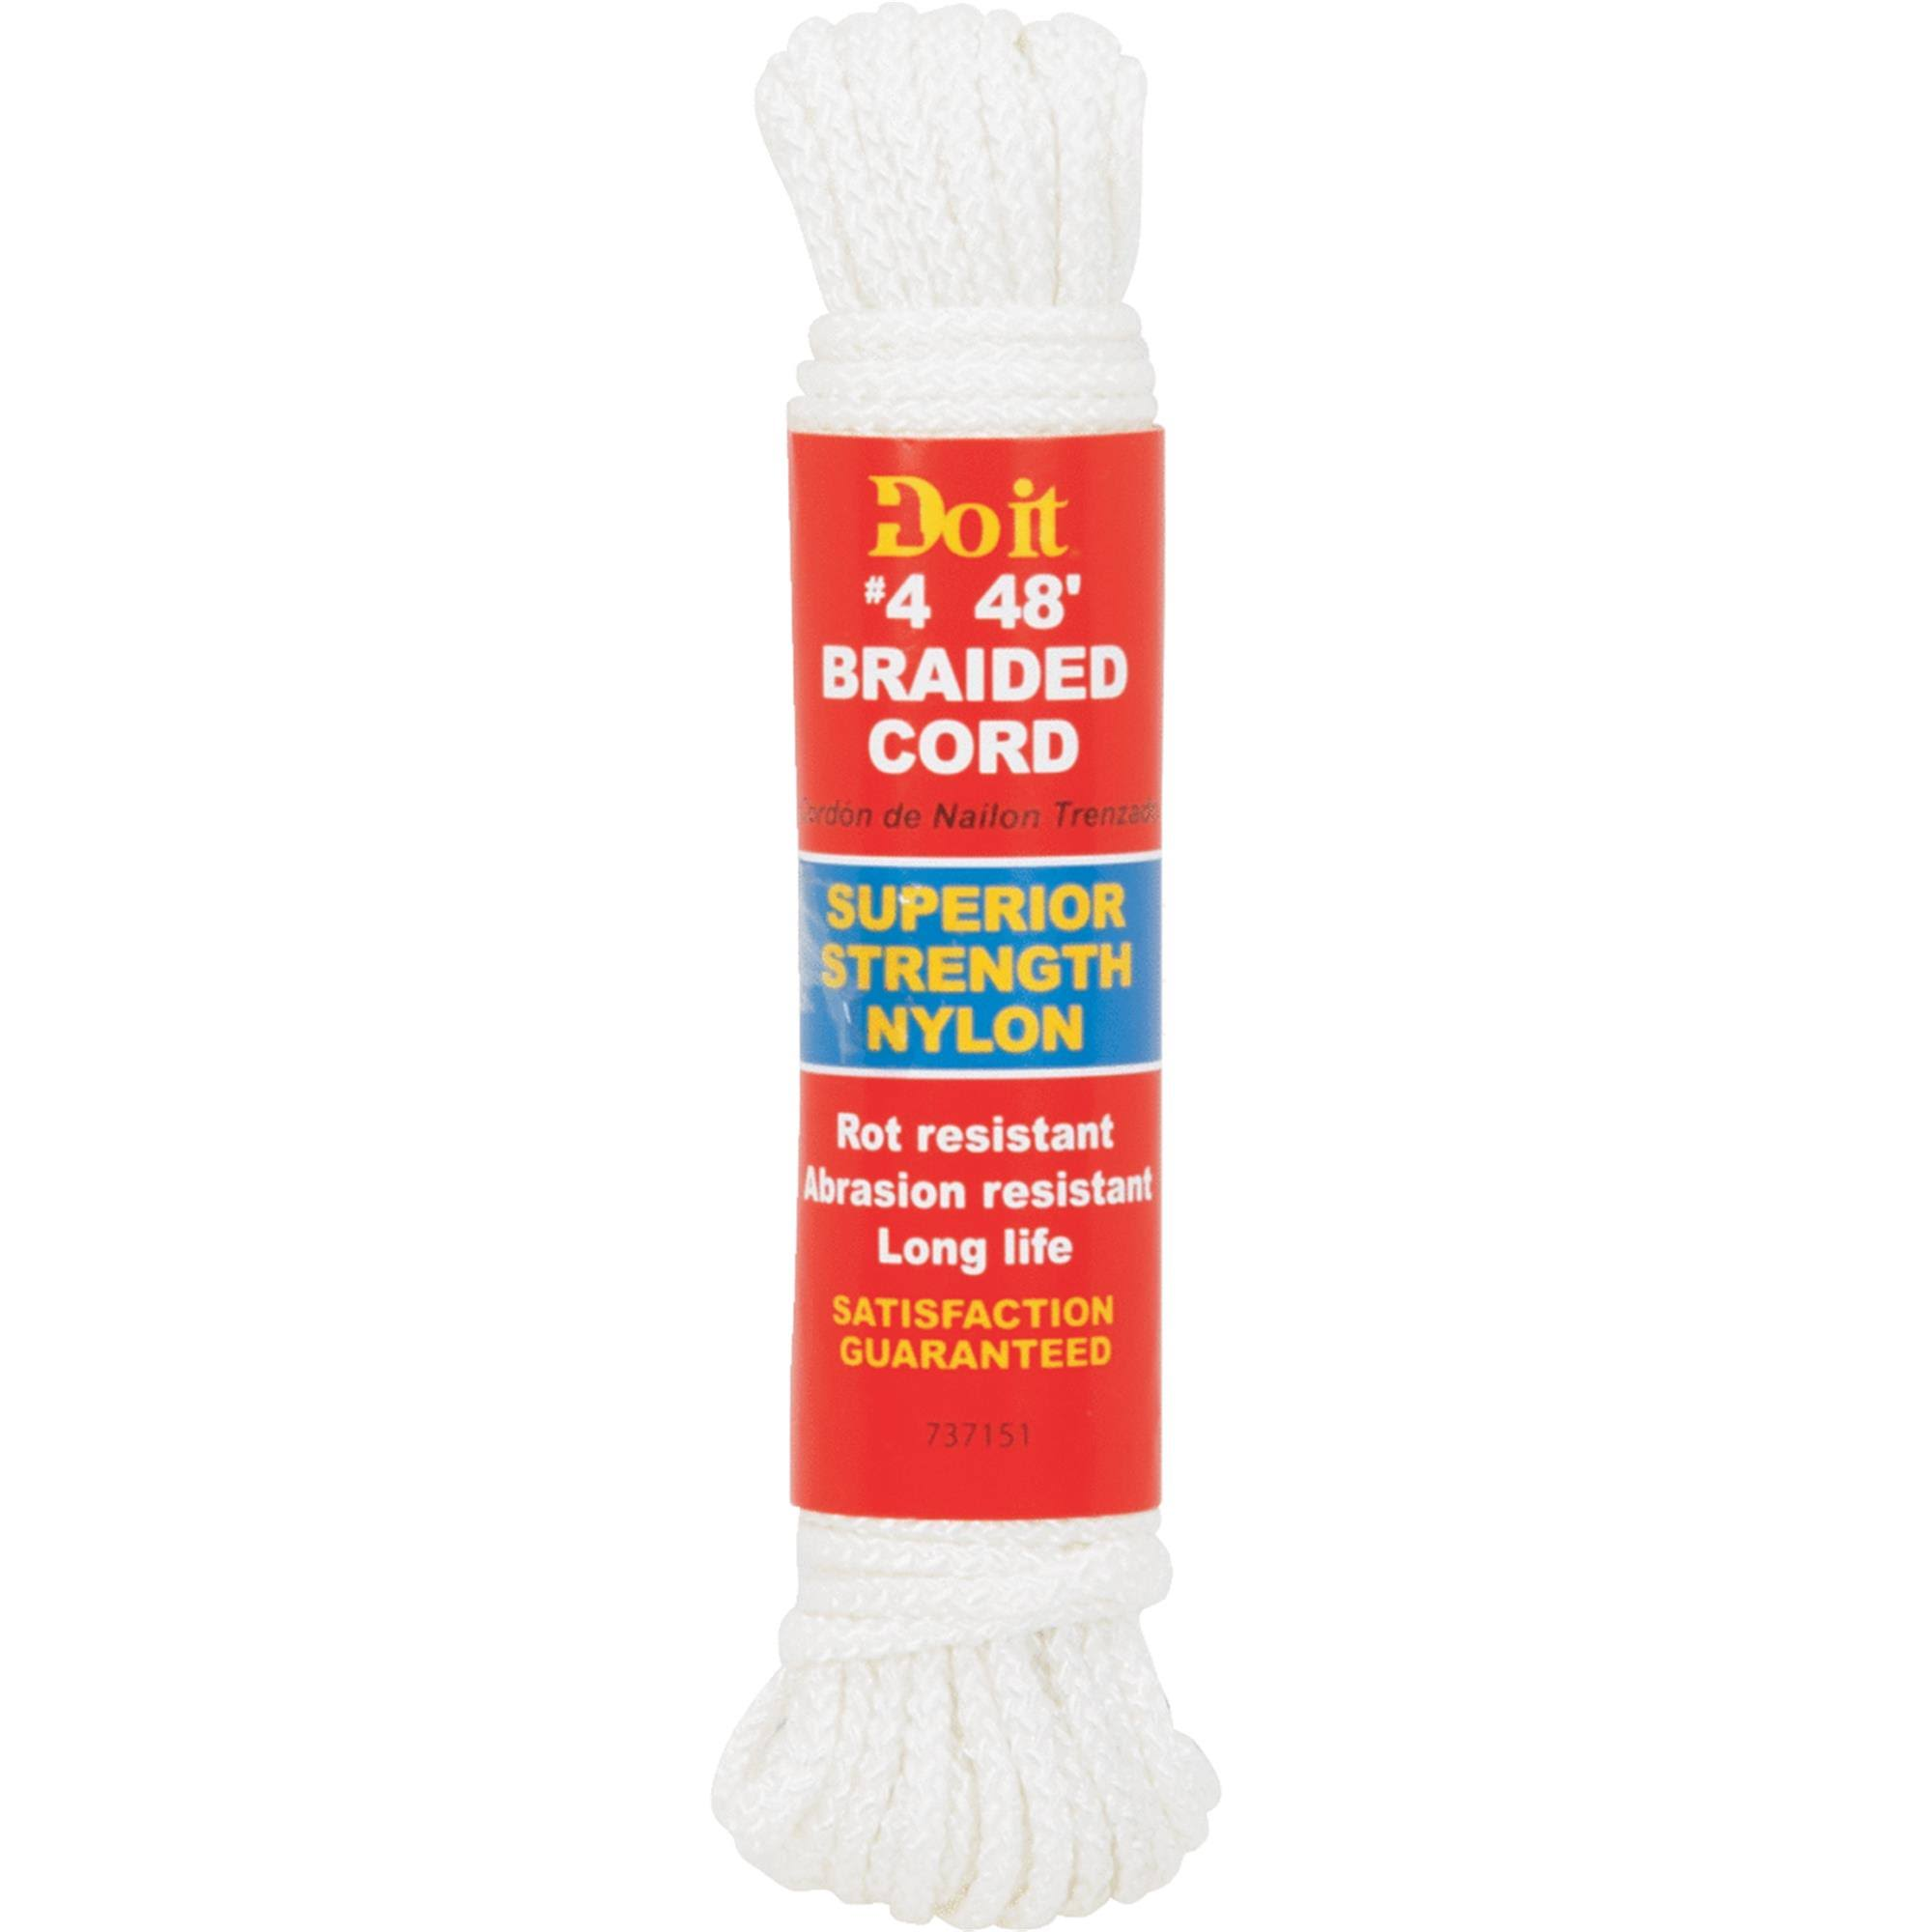 Do It Best Braided Cord - Super Strength Nylon, 48'